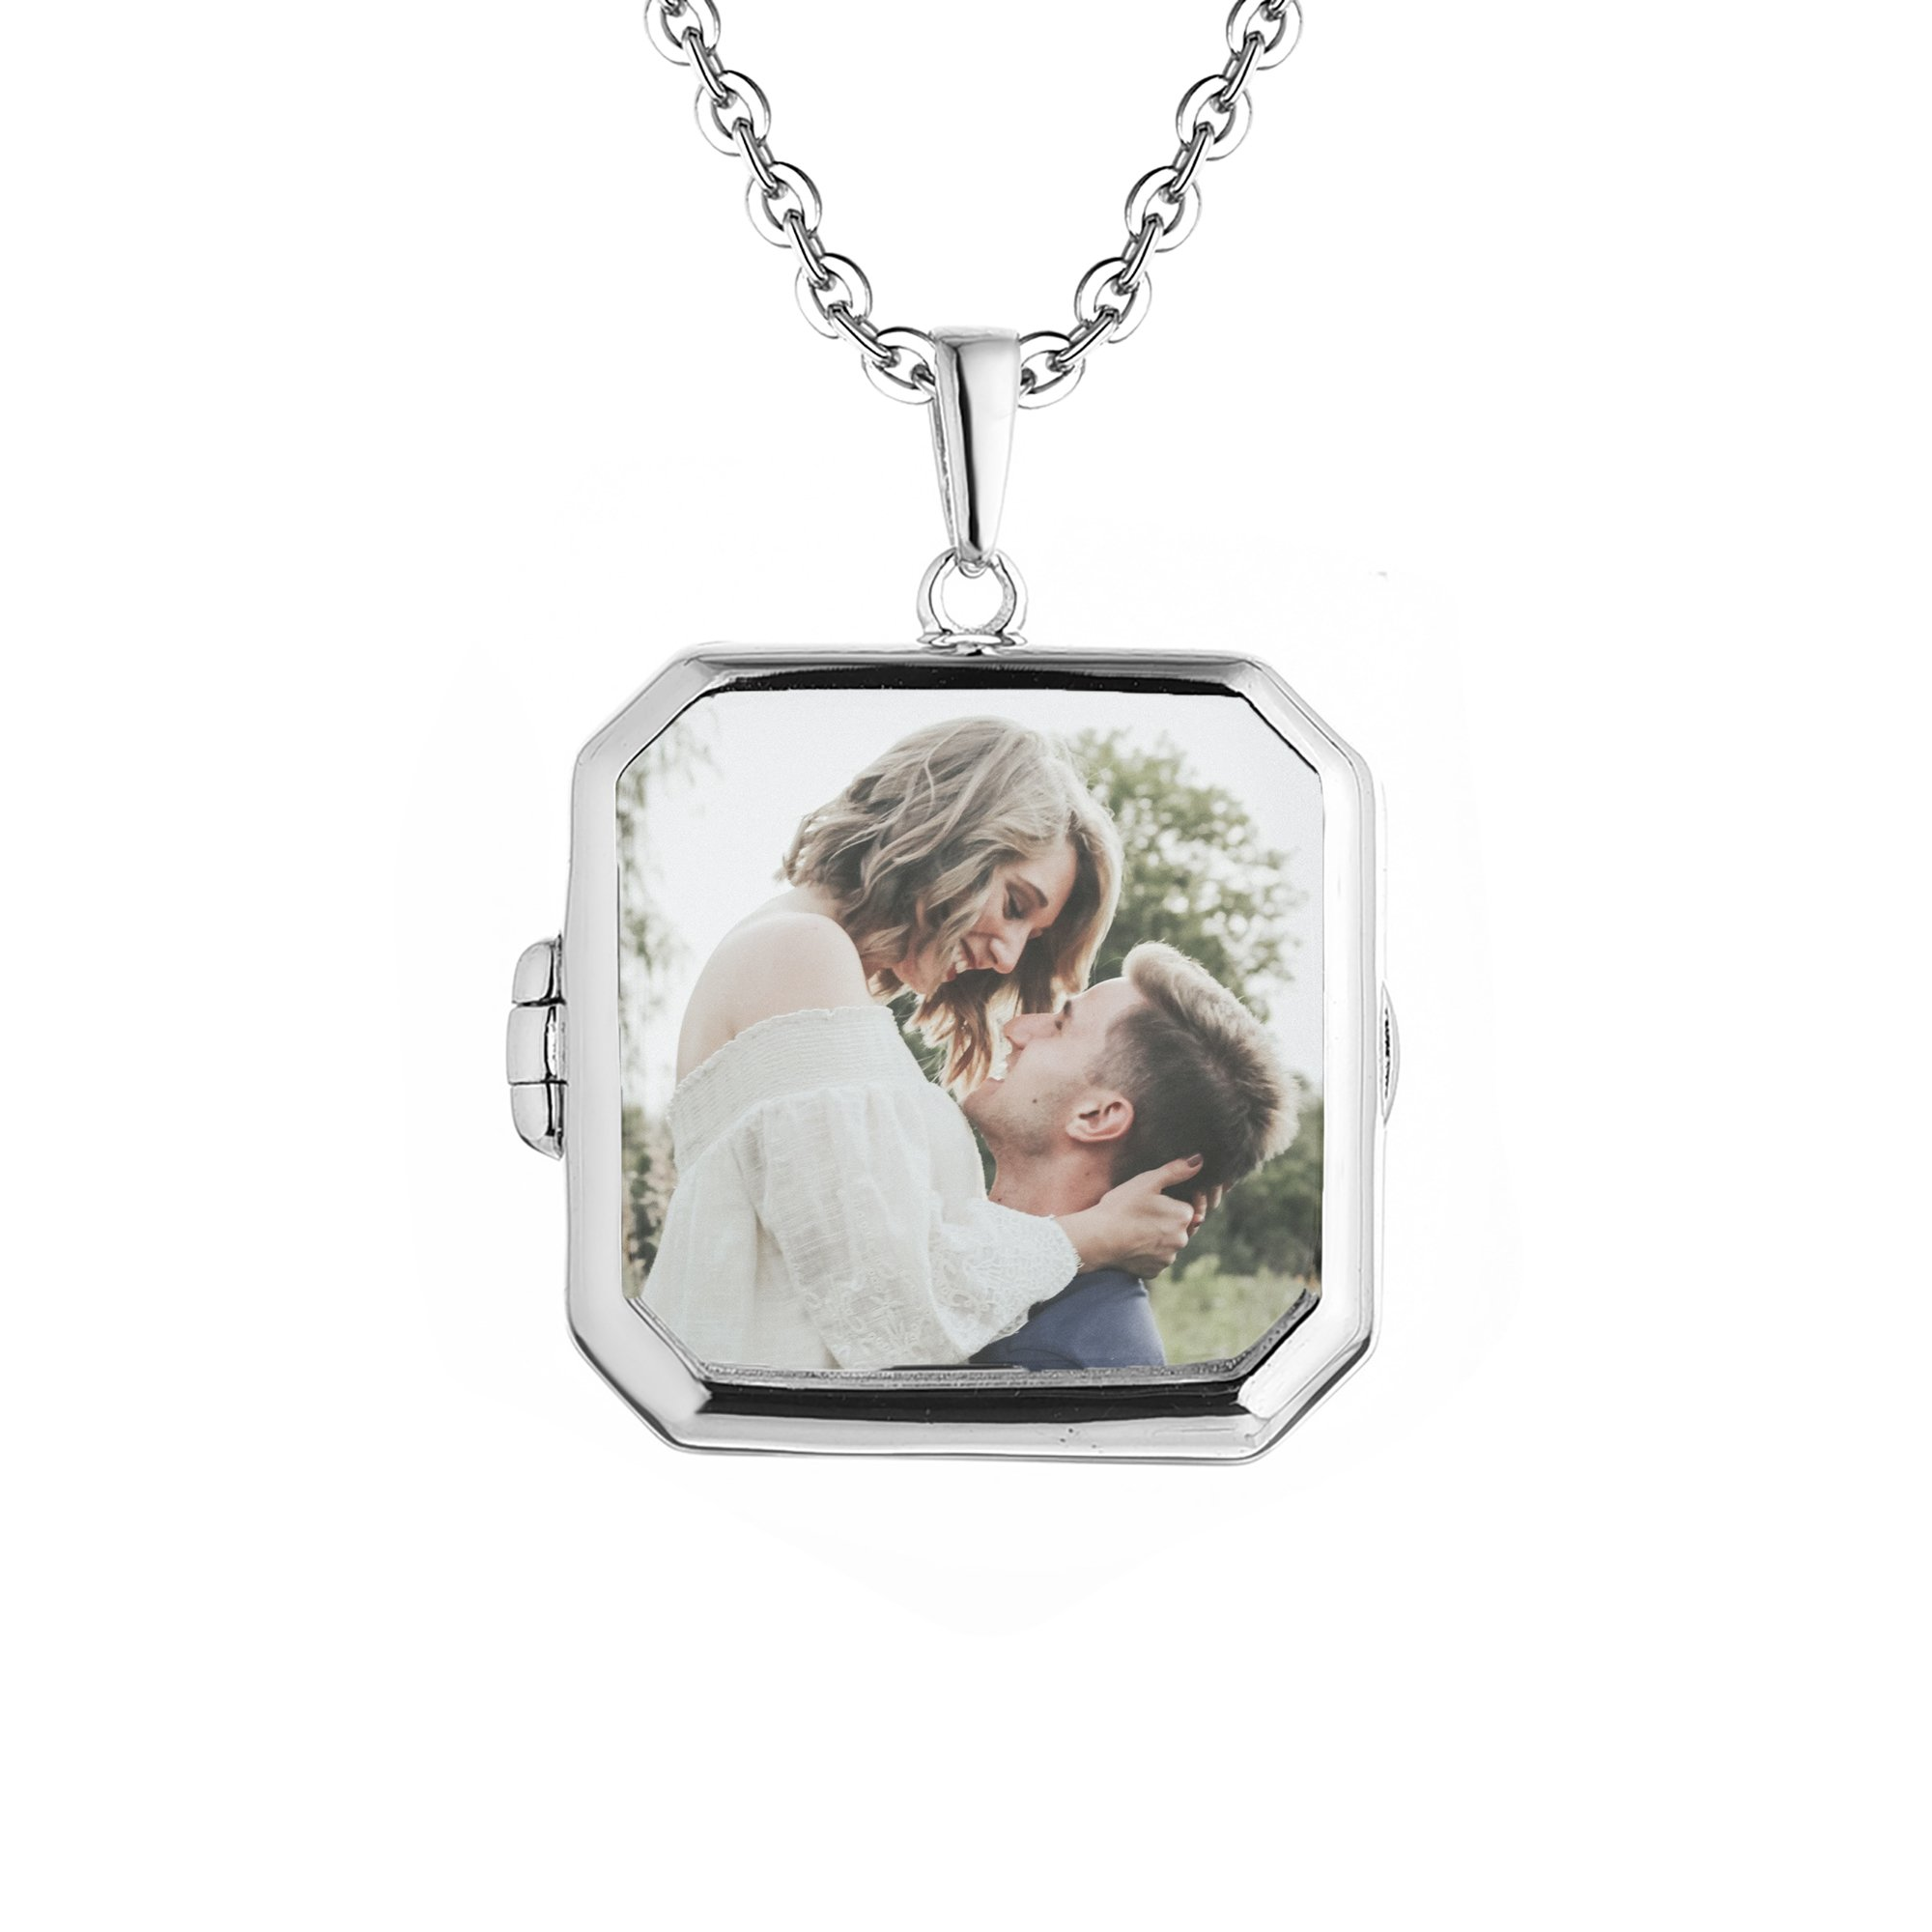 With You Lockets Sterling Silver-Square Custom Photo Locket Necklace-36-inch chain-The Billie